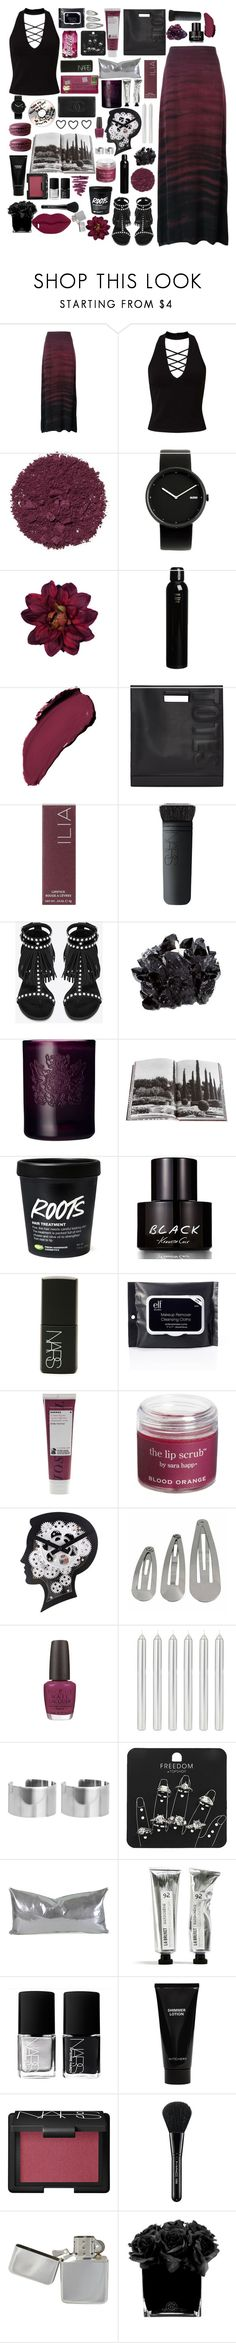 """Haunting"" by dailyoutfits0113 ❤ liked on Polyvore featuring Raquel Allegra, Miss Selfridge, Illamasqua, Alessi, Dahlia, Oribe, NARS Cosmetics, 3.1 Phillip Lim, DK and Ilia"